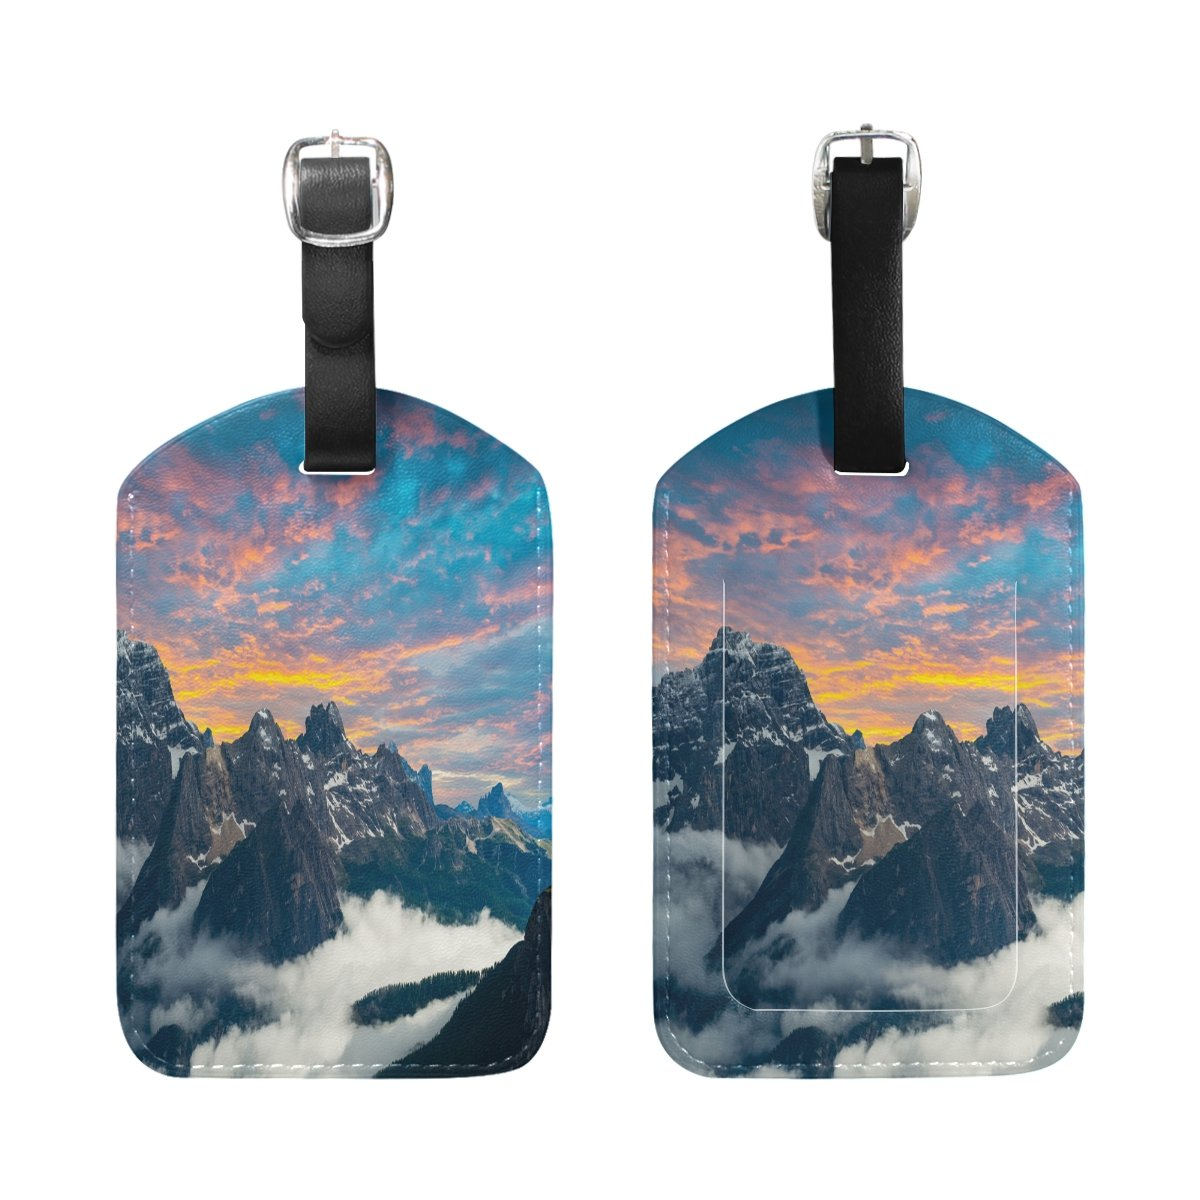 1Pcs Saobao Travel Luggage Tag Famous Italian National Park PU Leather Baggage Suitcase Travel ID Bag Tag